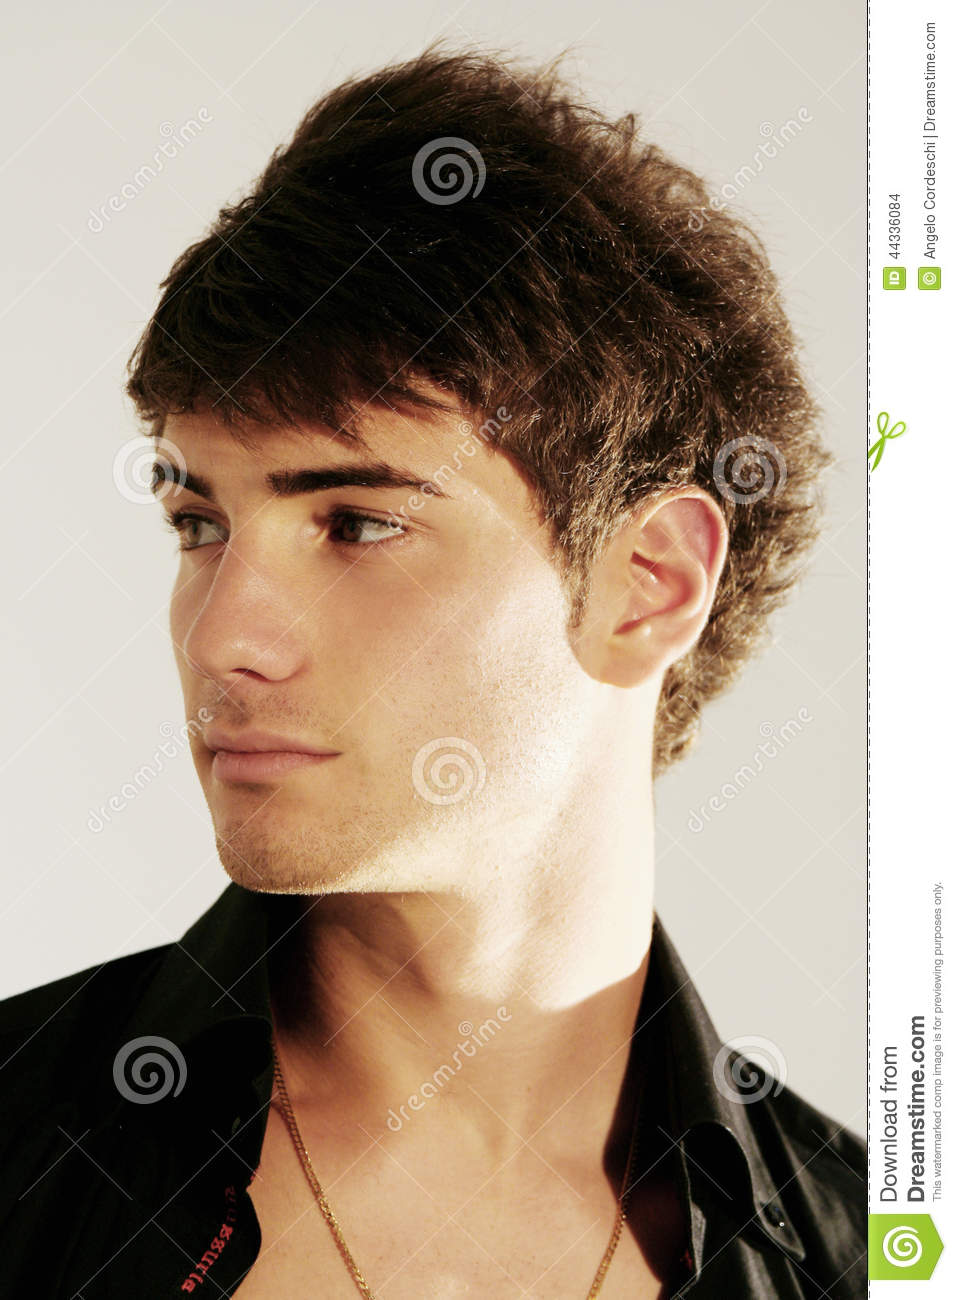 Handsome Young Boy Hair Style Oper Shirt Stock Photo